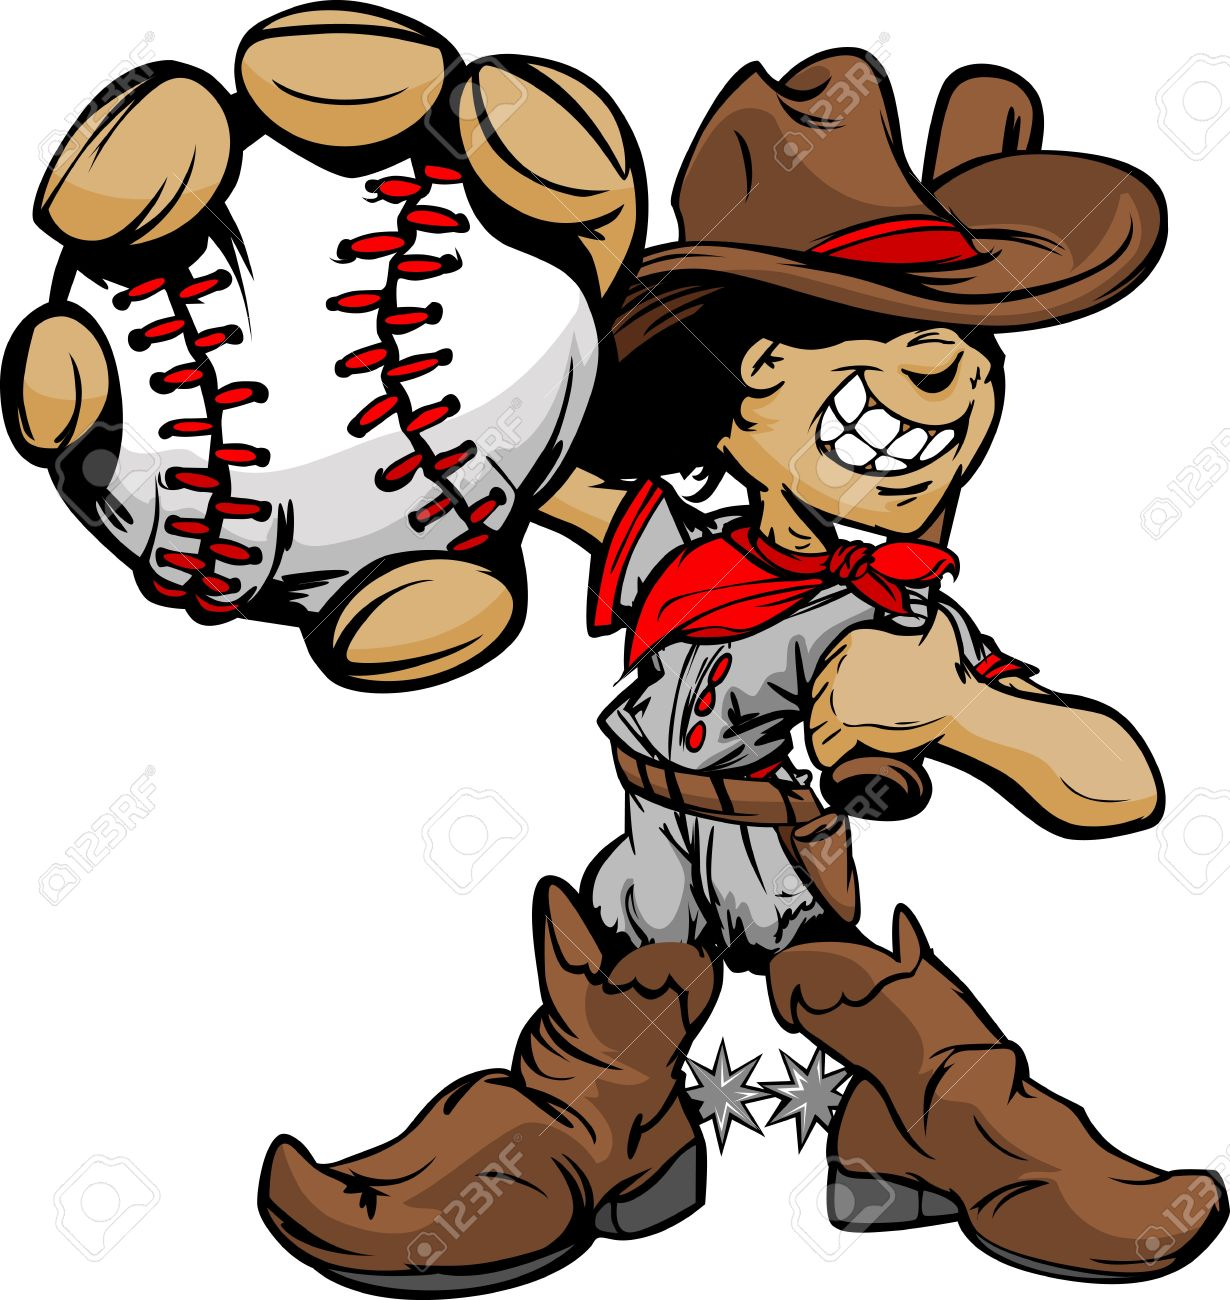 Baseball Cartoon Boy Cowboy Holding Bat Illustration Stock Vector - 12982416